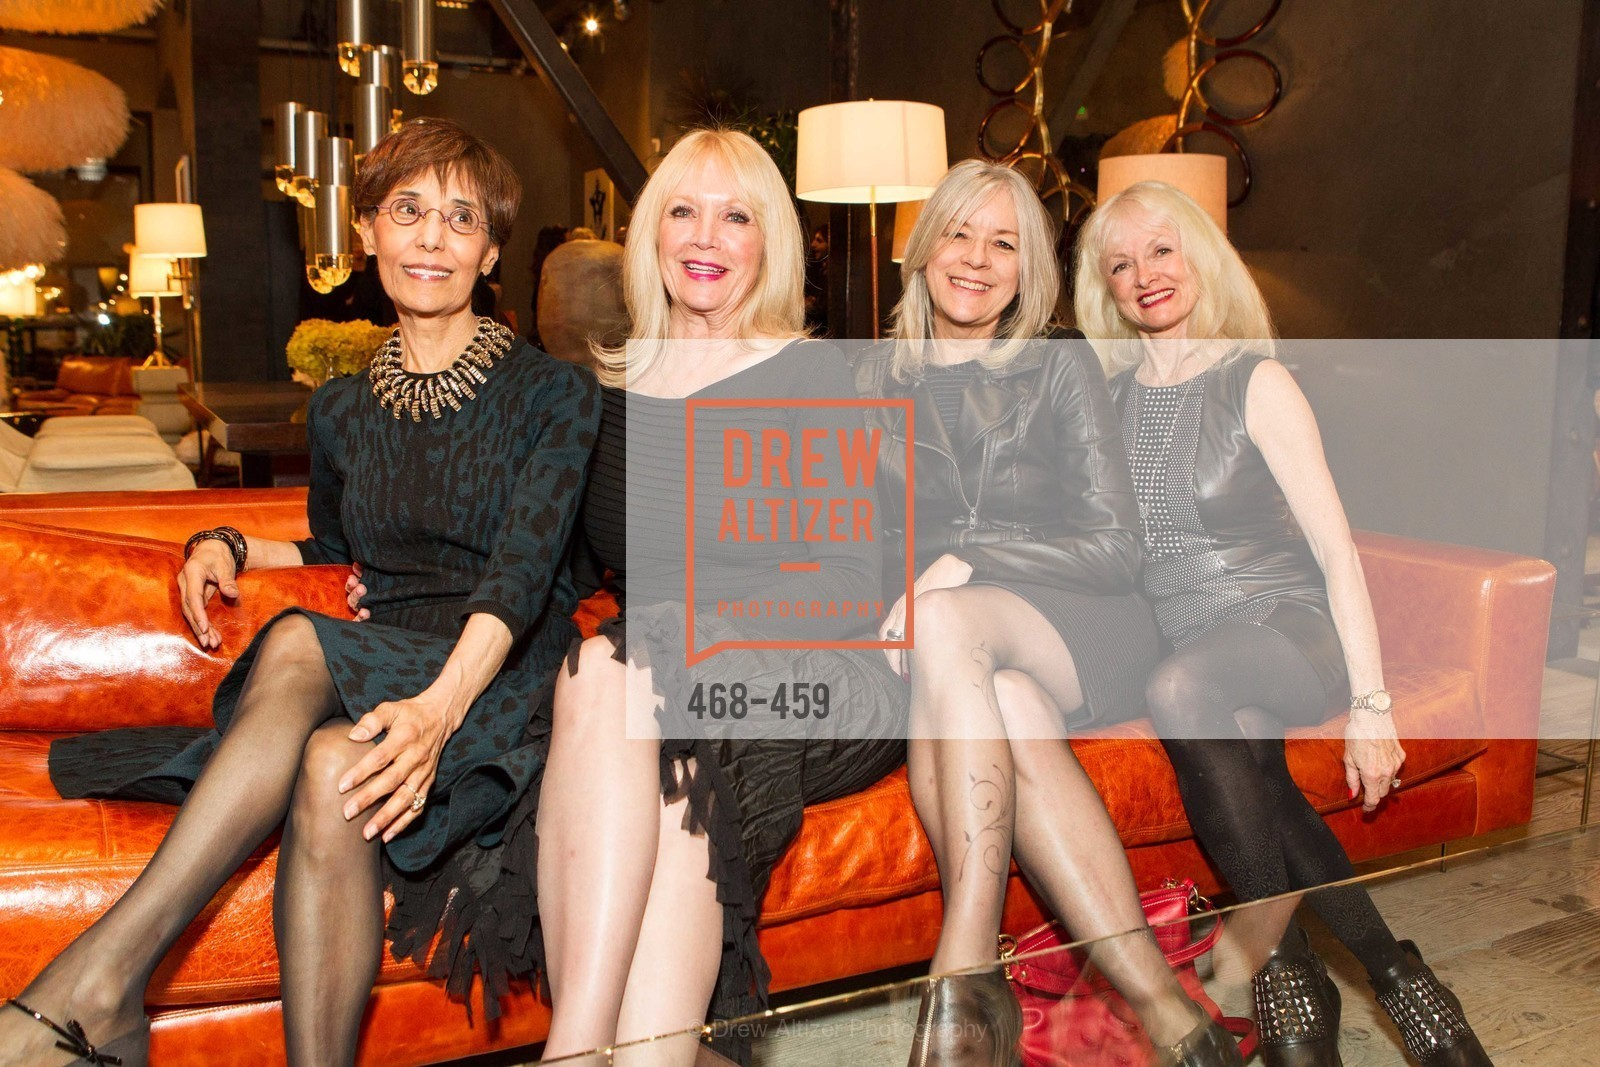 Beatrice Wood, Grace Sorg, Christy Lopez, Andrea Espina, 2014 SAN FRANCISCO BALLET OPENING NIGHT GALA Patron and Sponsor Reception, US. US, January 14th, 2014,Drew Altizer, Drew Altizer Photography, full-service agency, private events, San Francisco photographer, photographer california